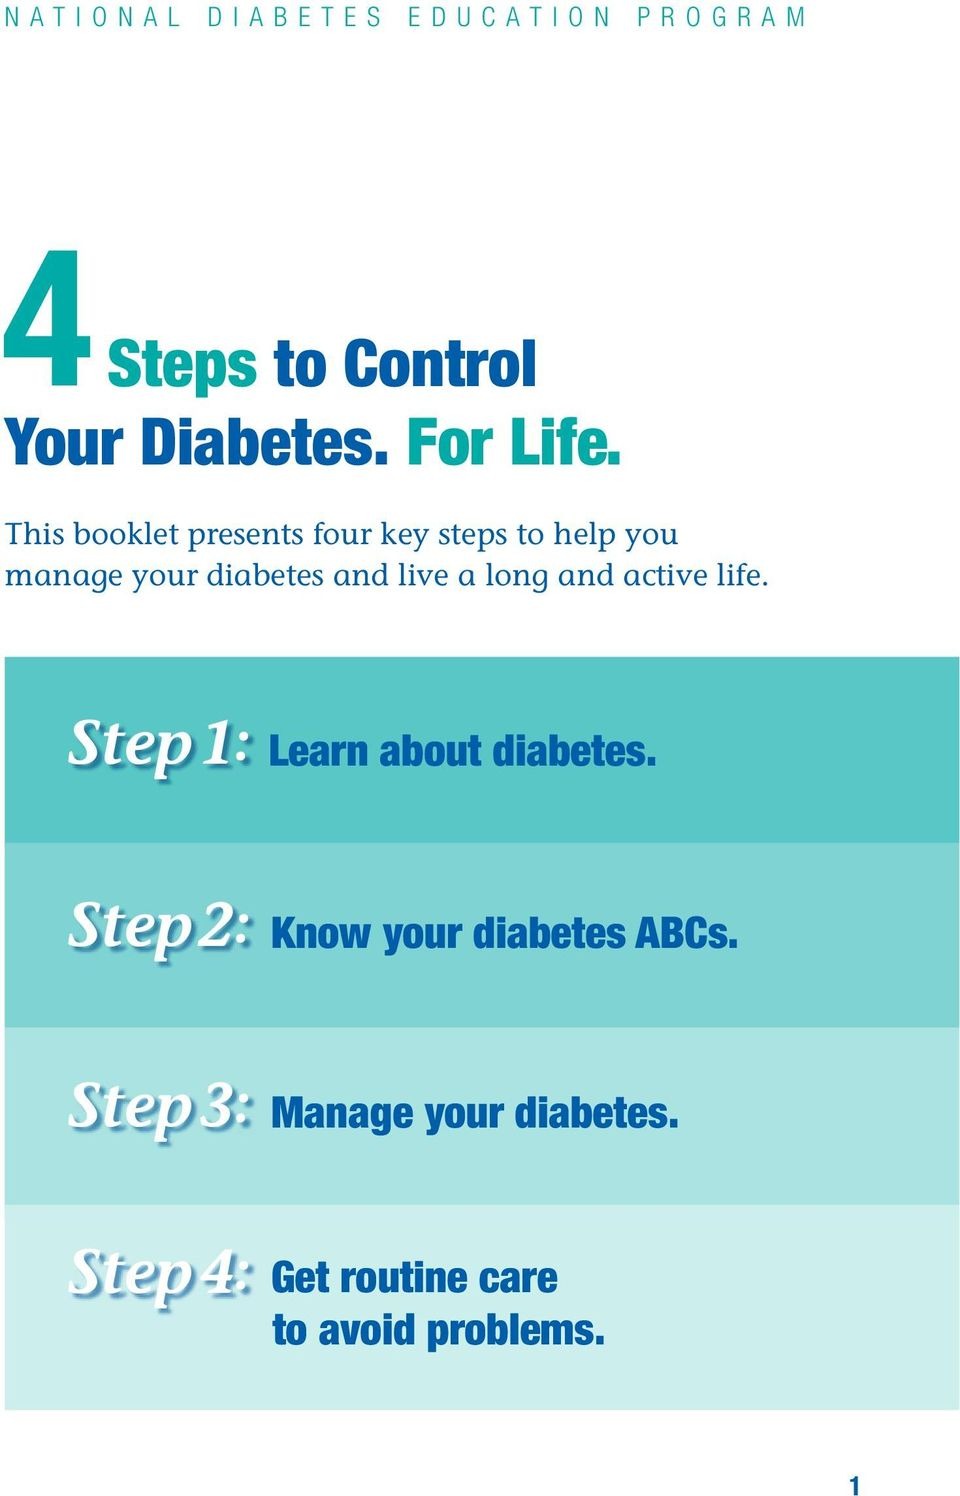 log ad active life. Step 1: Lear about diabetes.